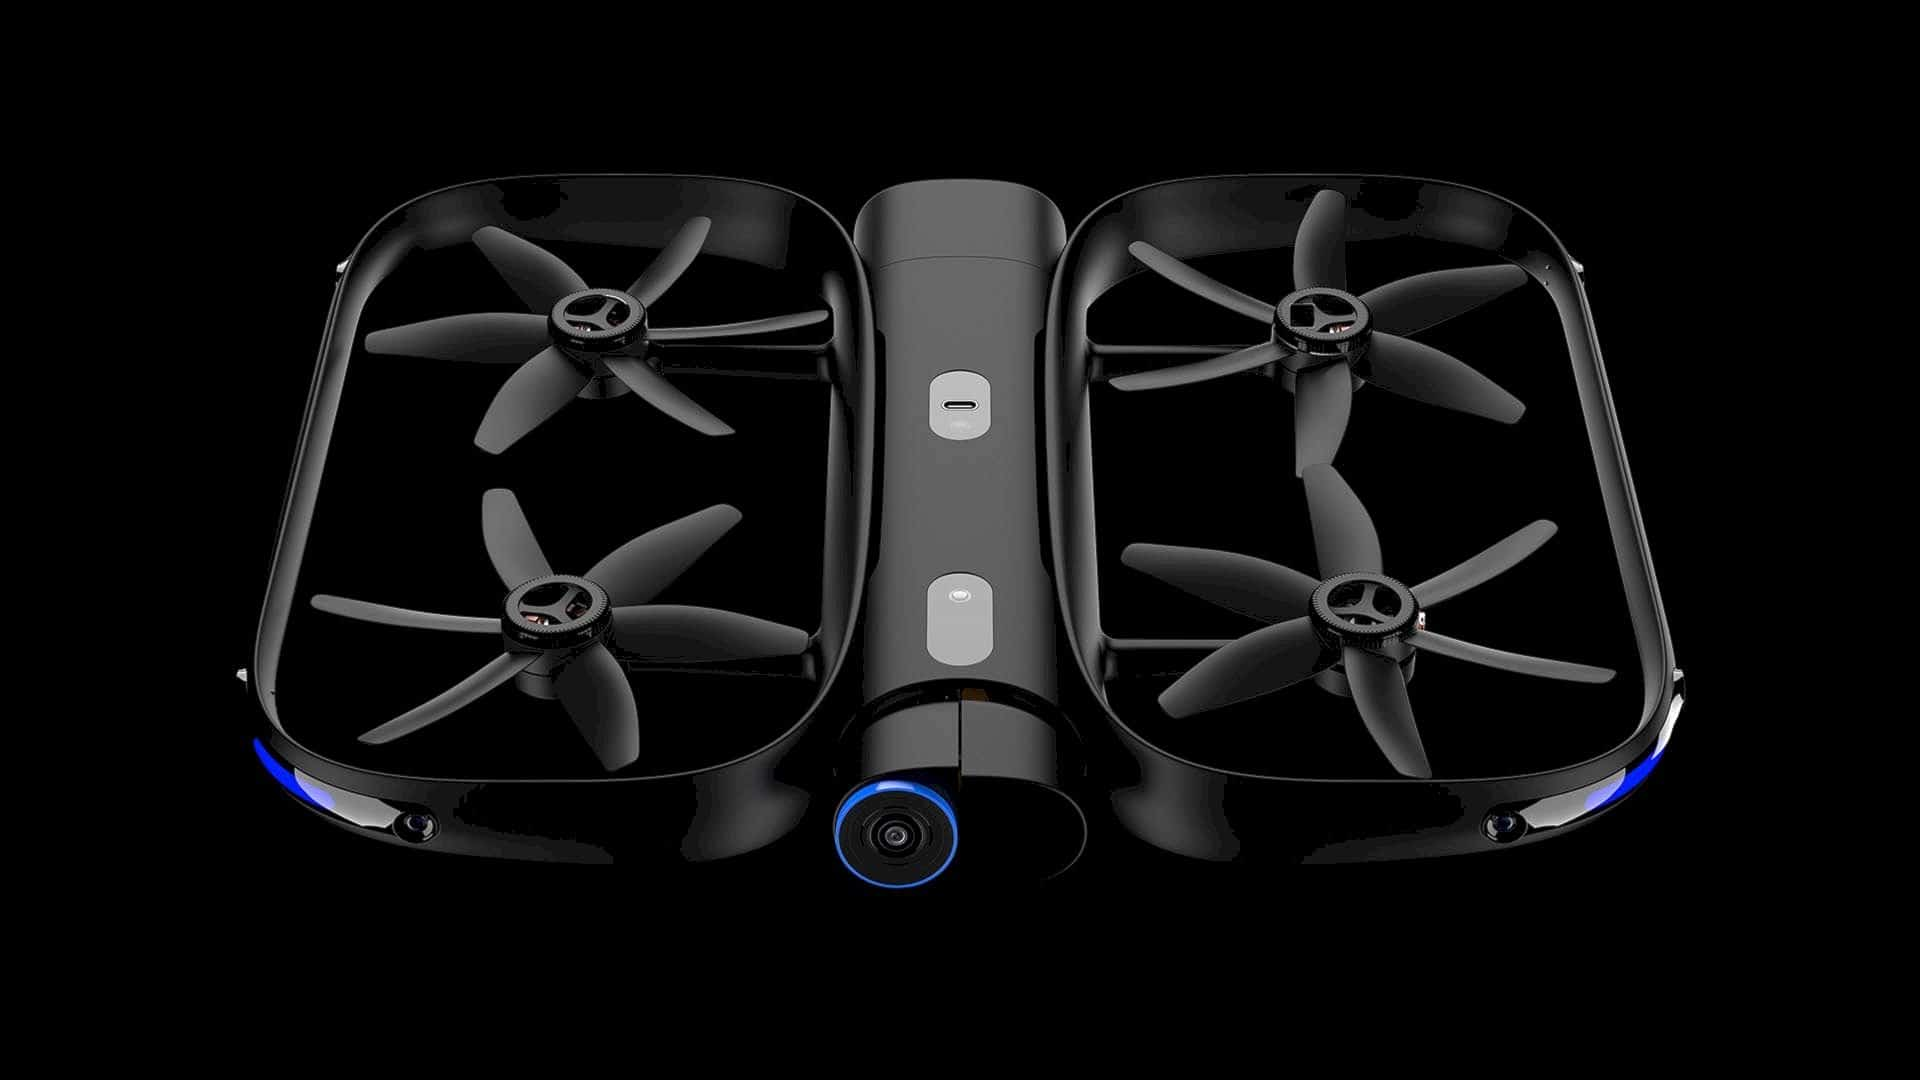 Skydio R1: The Self-Flying Camera is Here